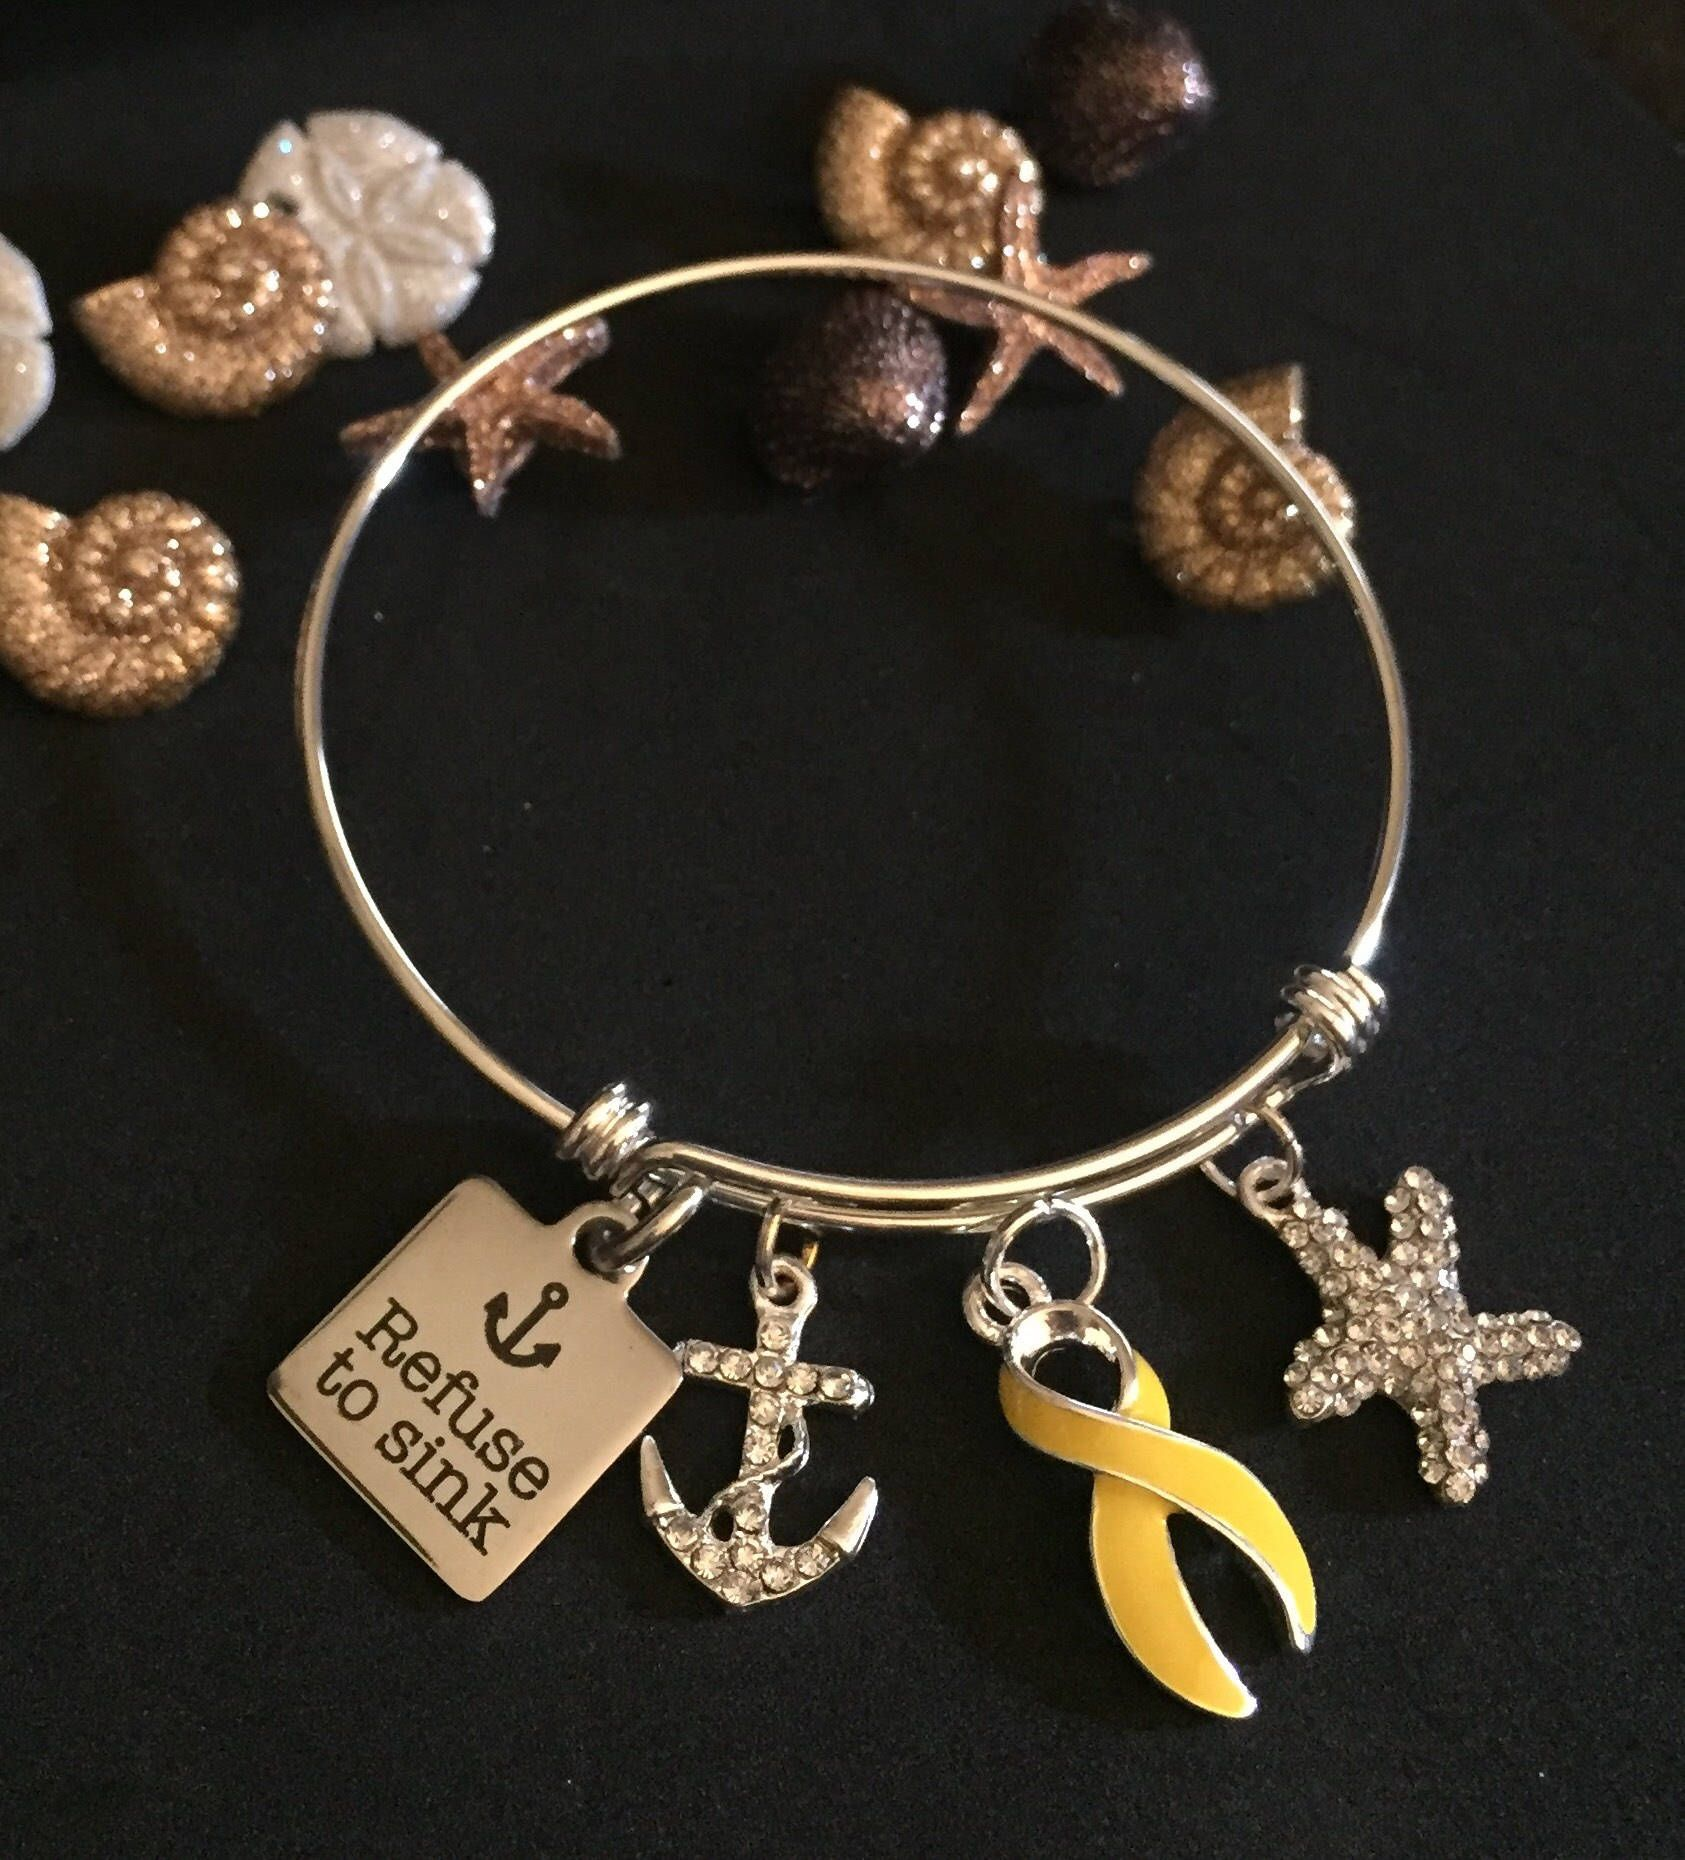 uk endometriosis bracelet bifida amazon awareness jewelry dp jewellery yellow spina bling co